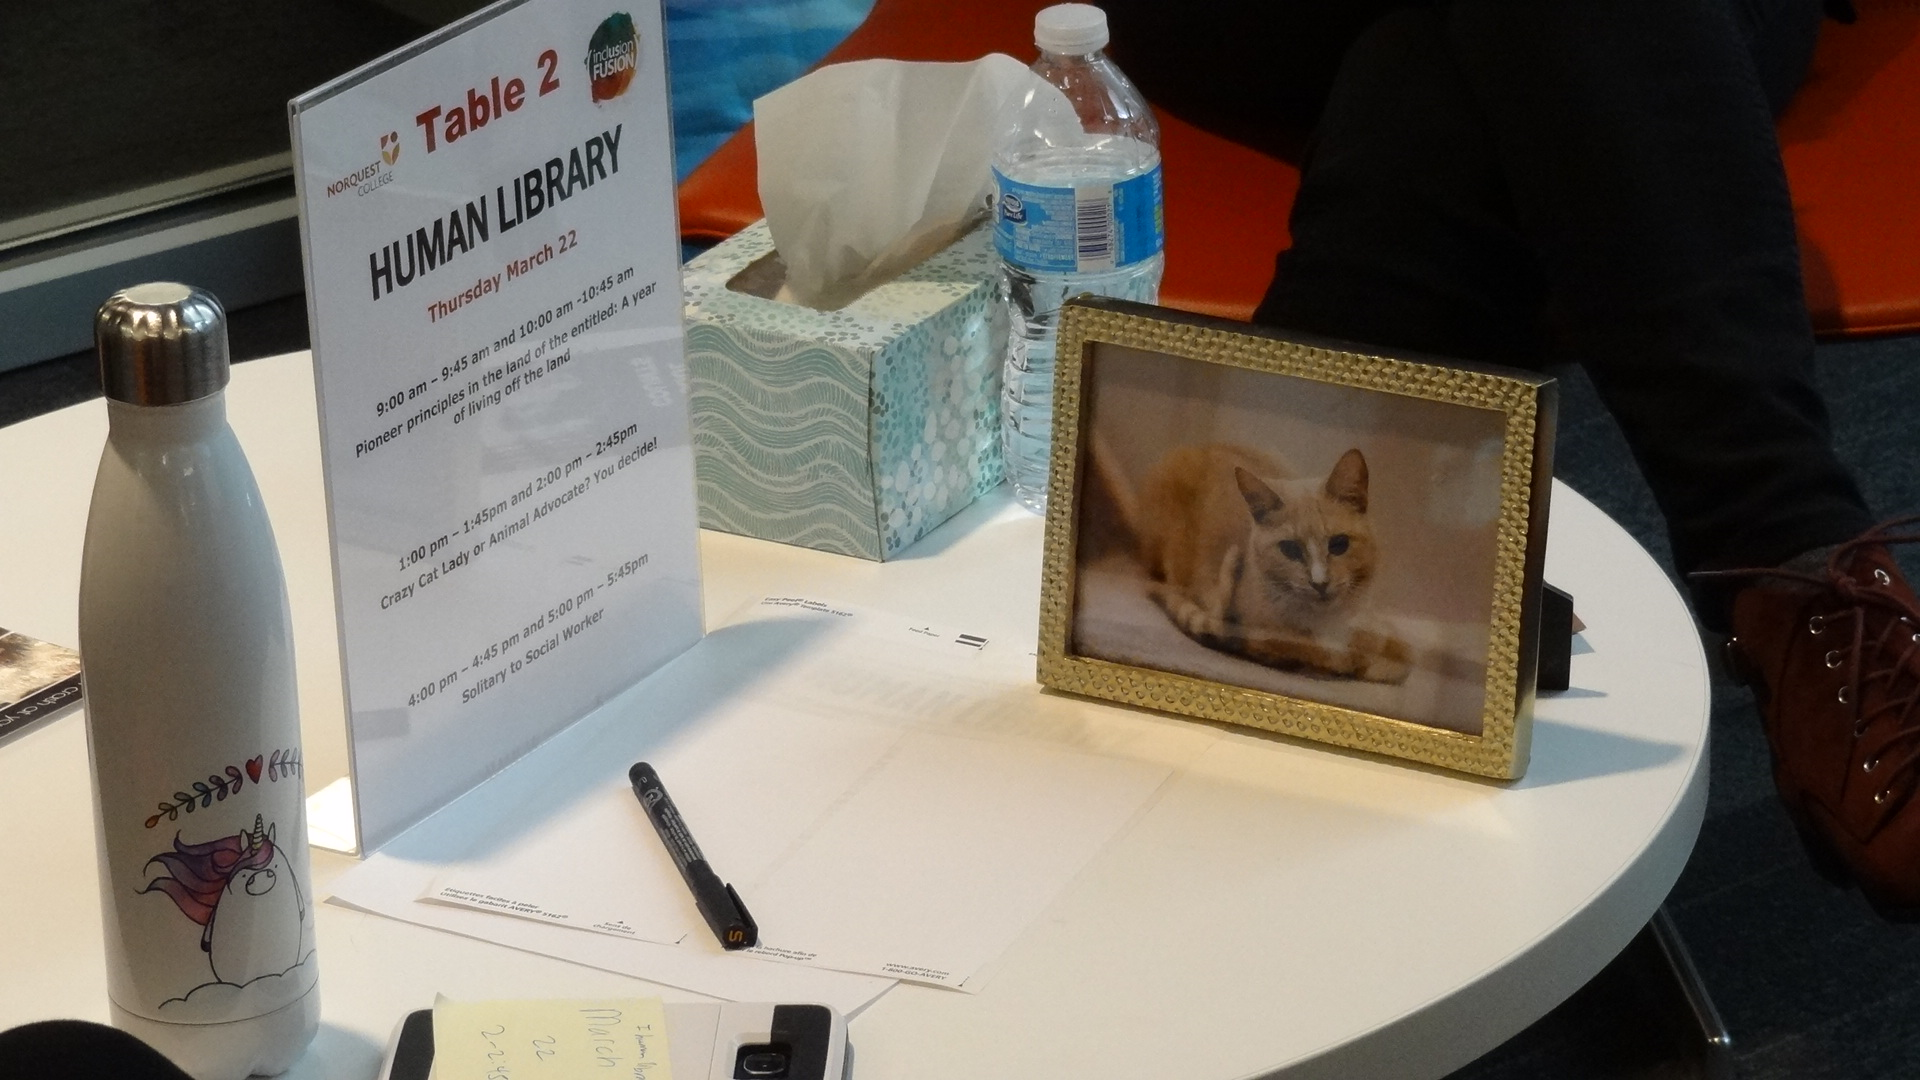 Photo of a table with a poster for the human library and a framed picture of a cat